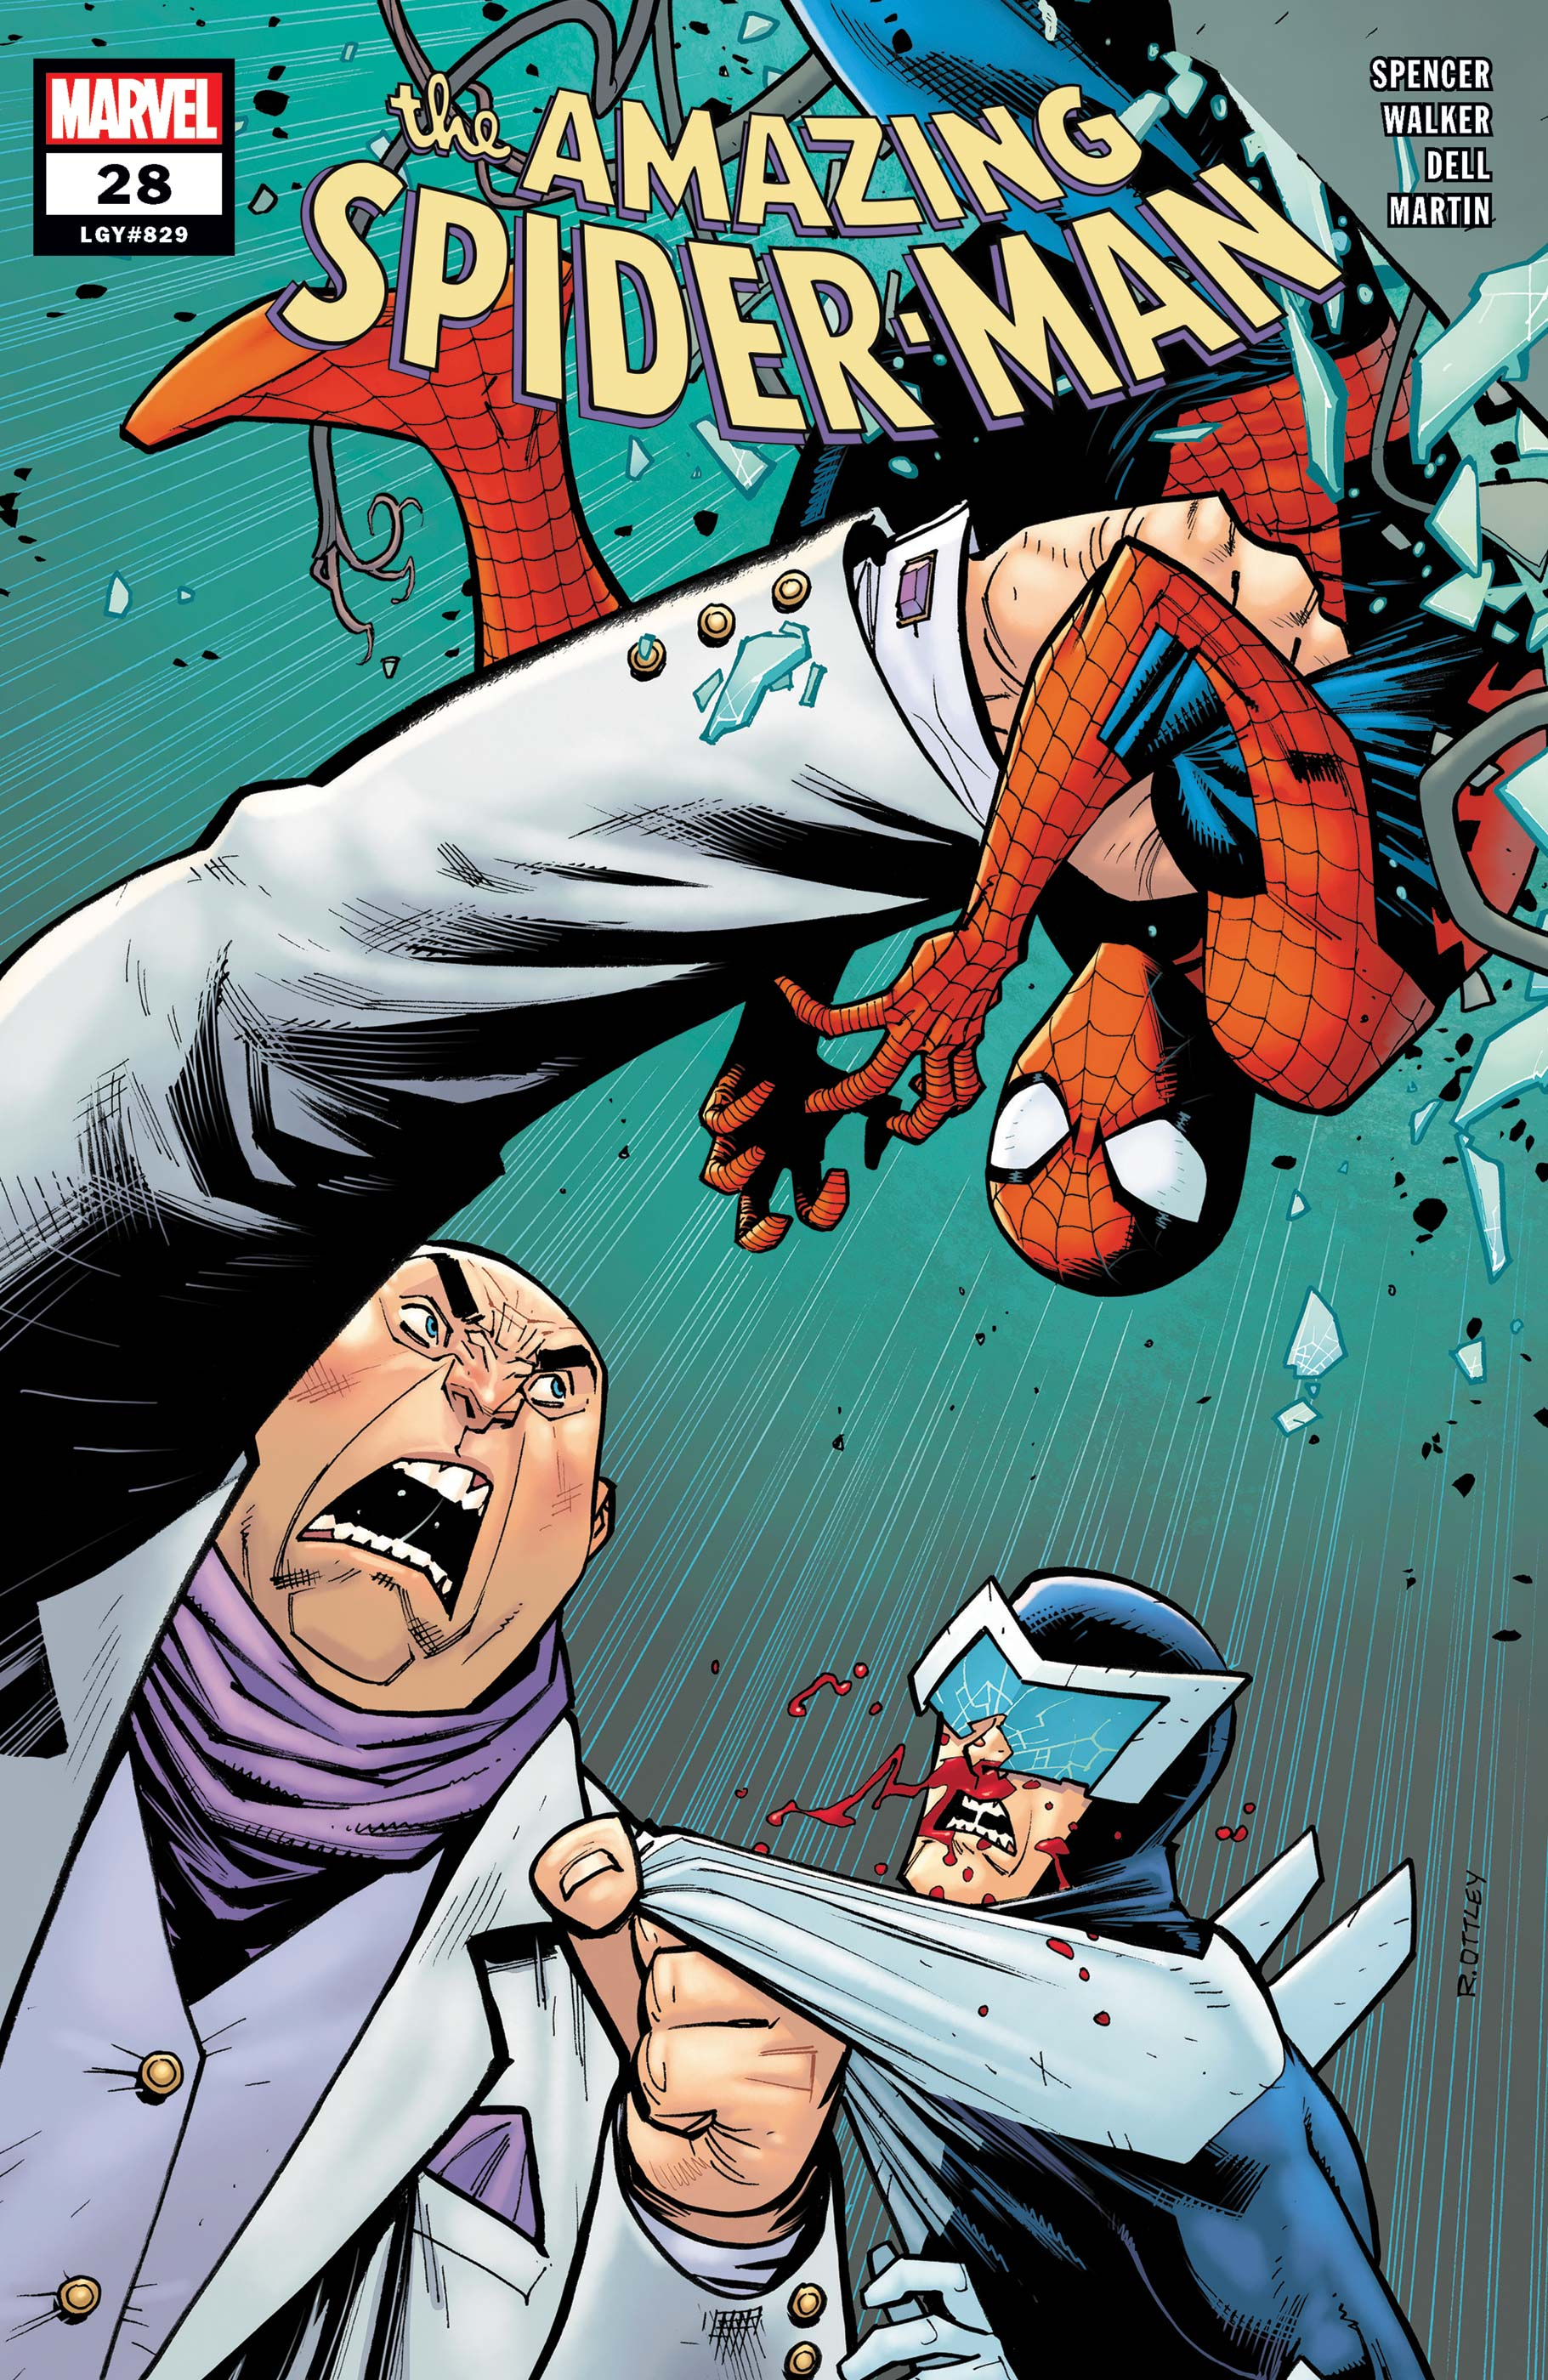 The Amazing Spider-Man (2018) #28